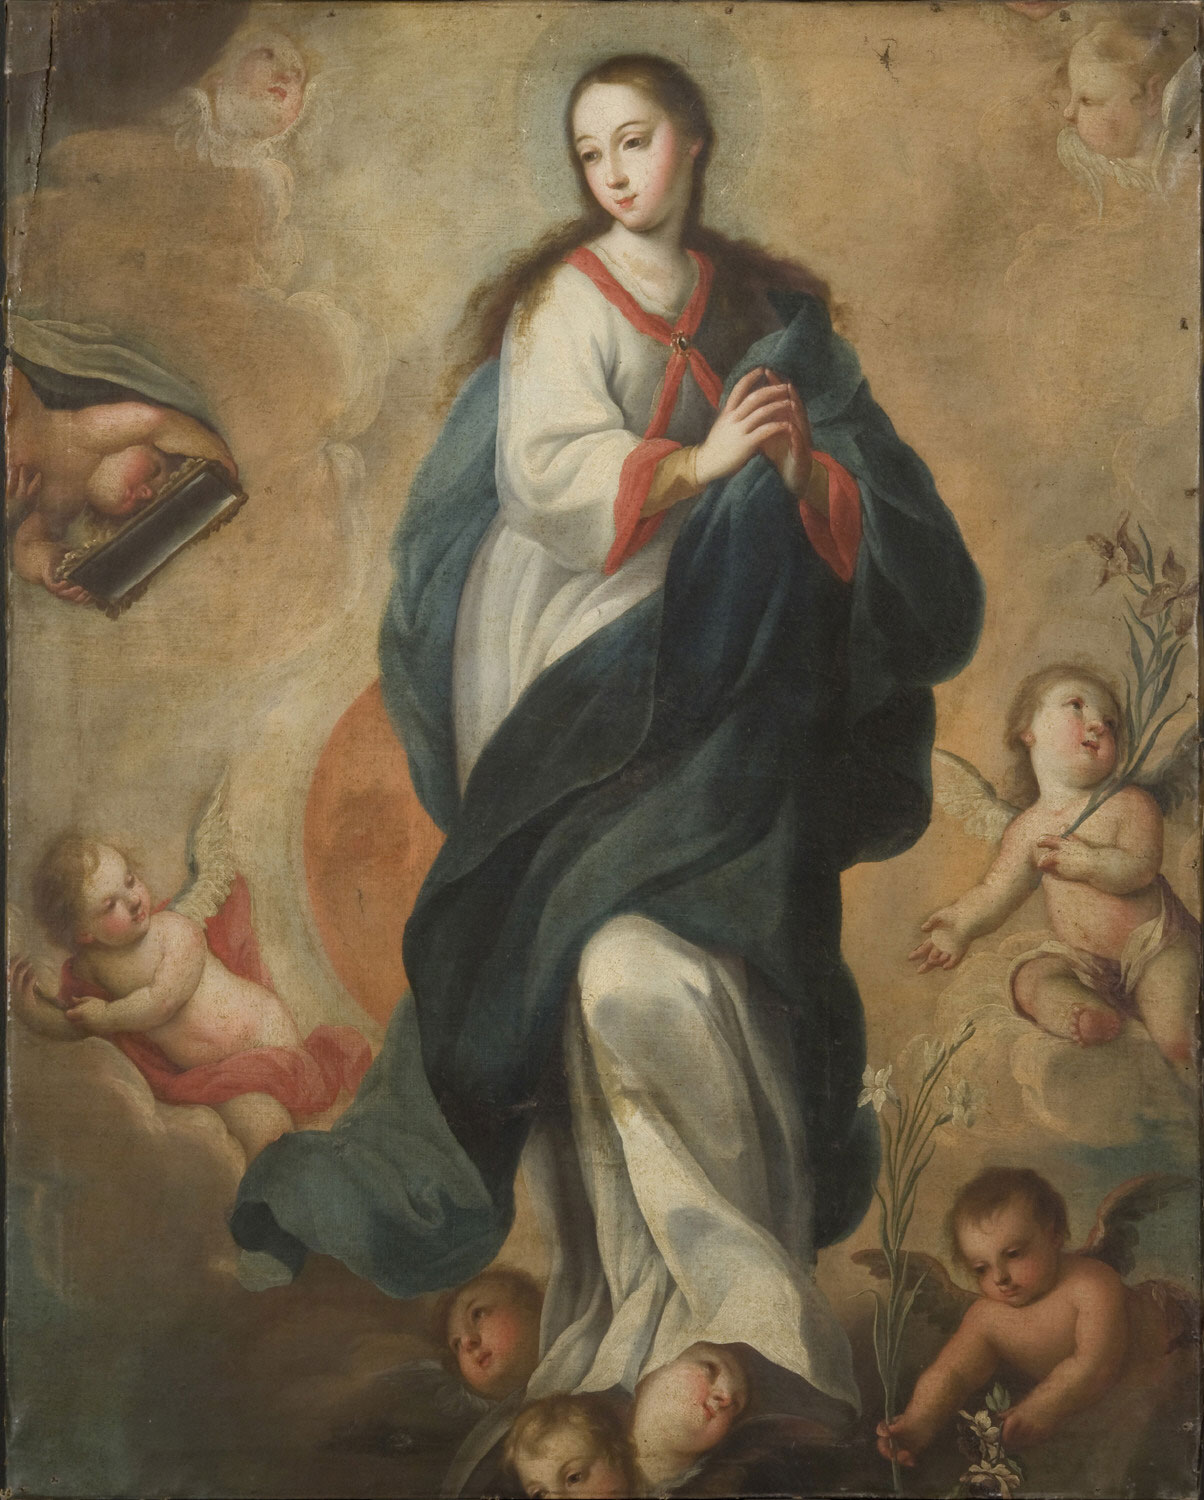 Assumption of the Virgin, 18th century; unknown Mexican artist